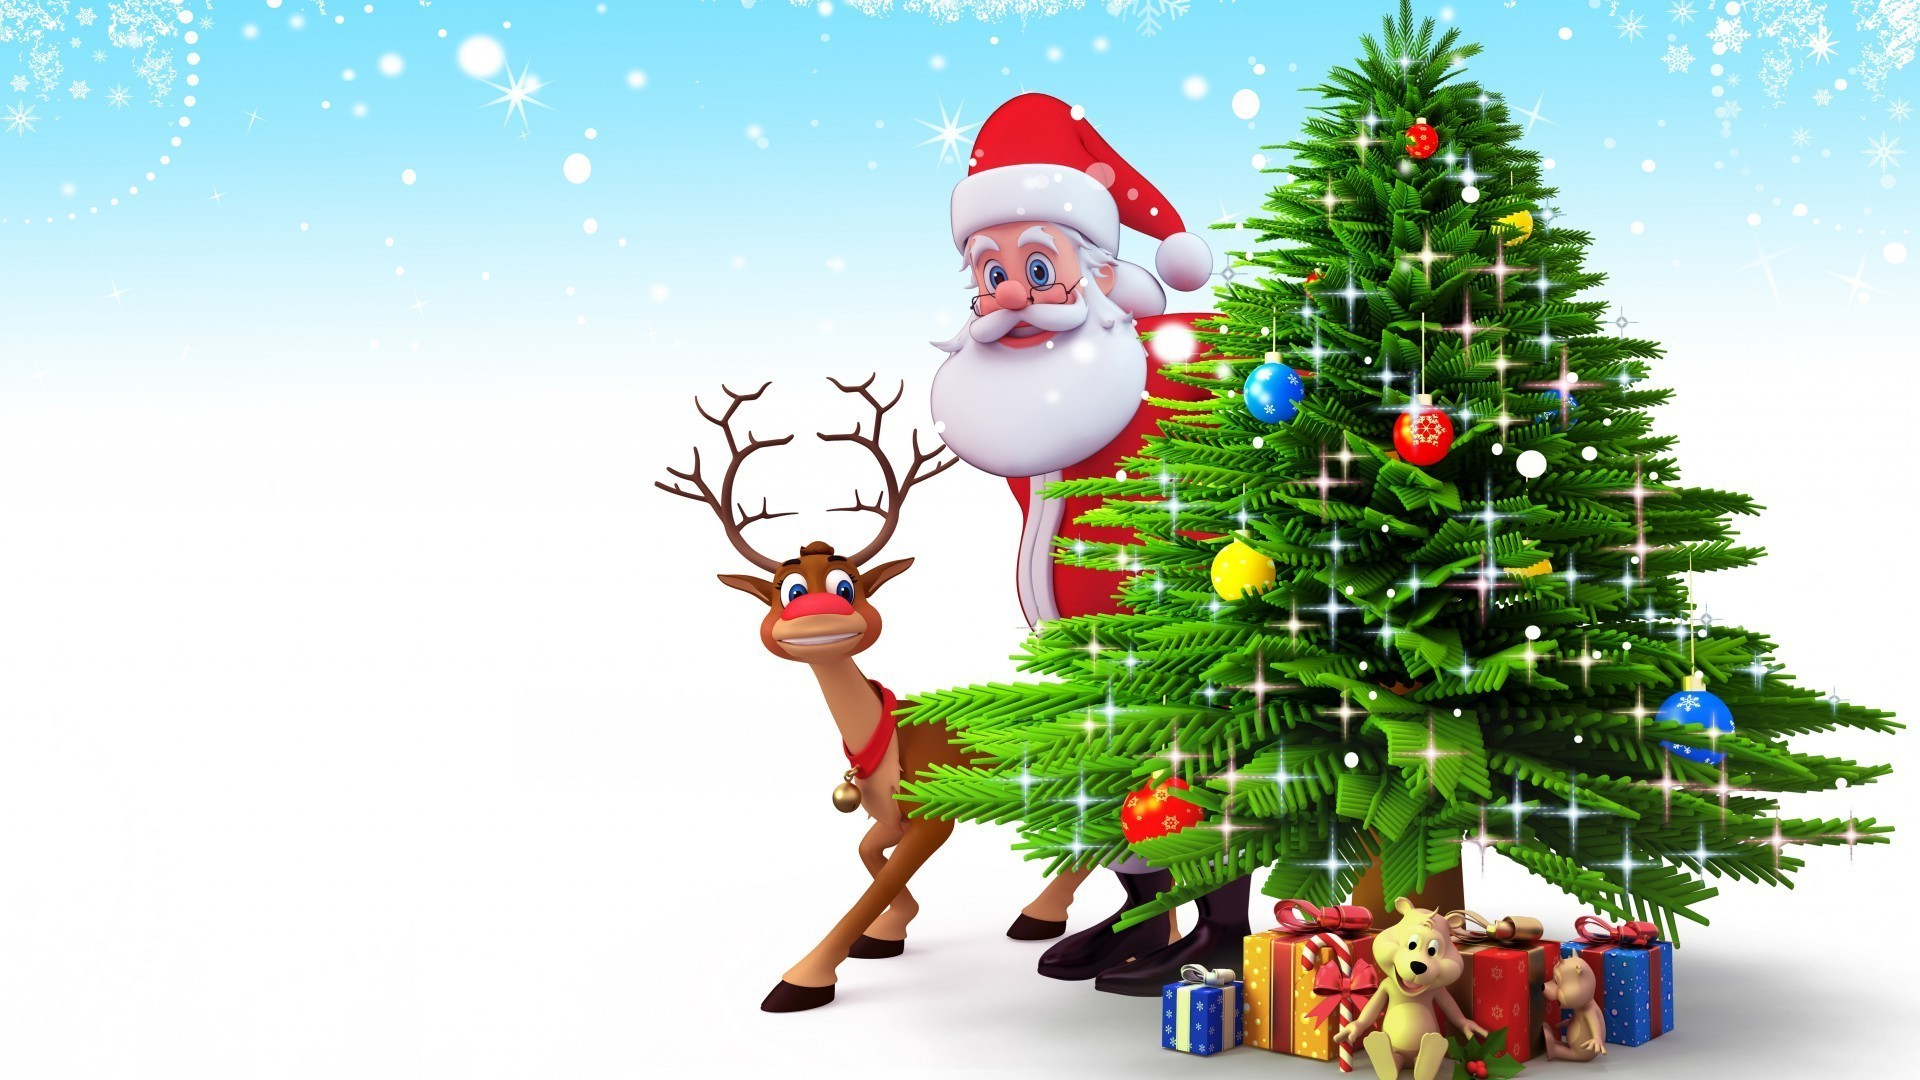 Christmas tree with gifts, Santa Claus and reindeer